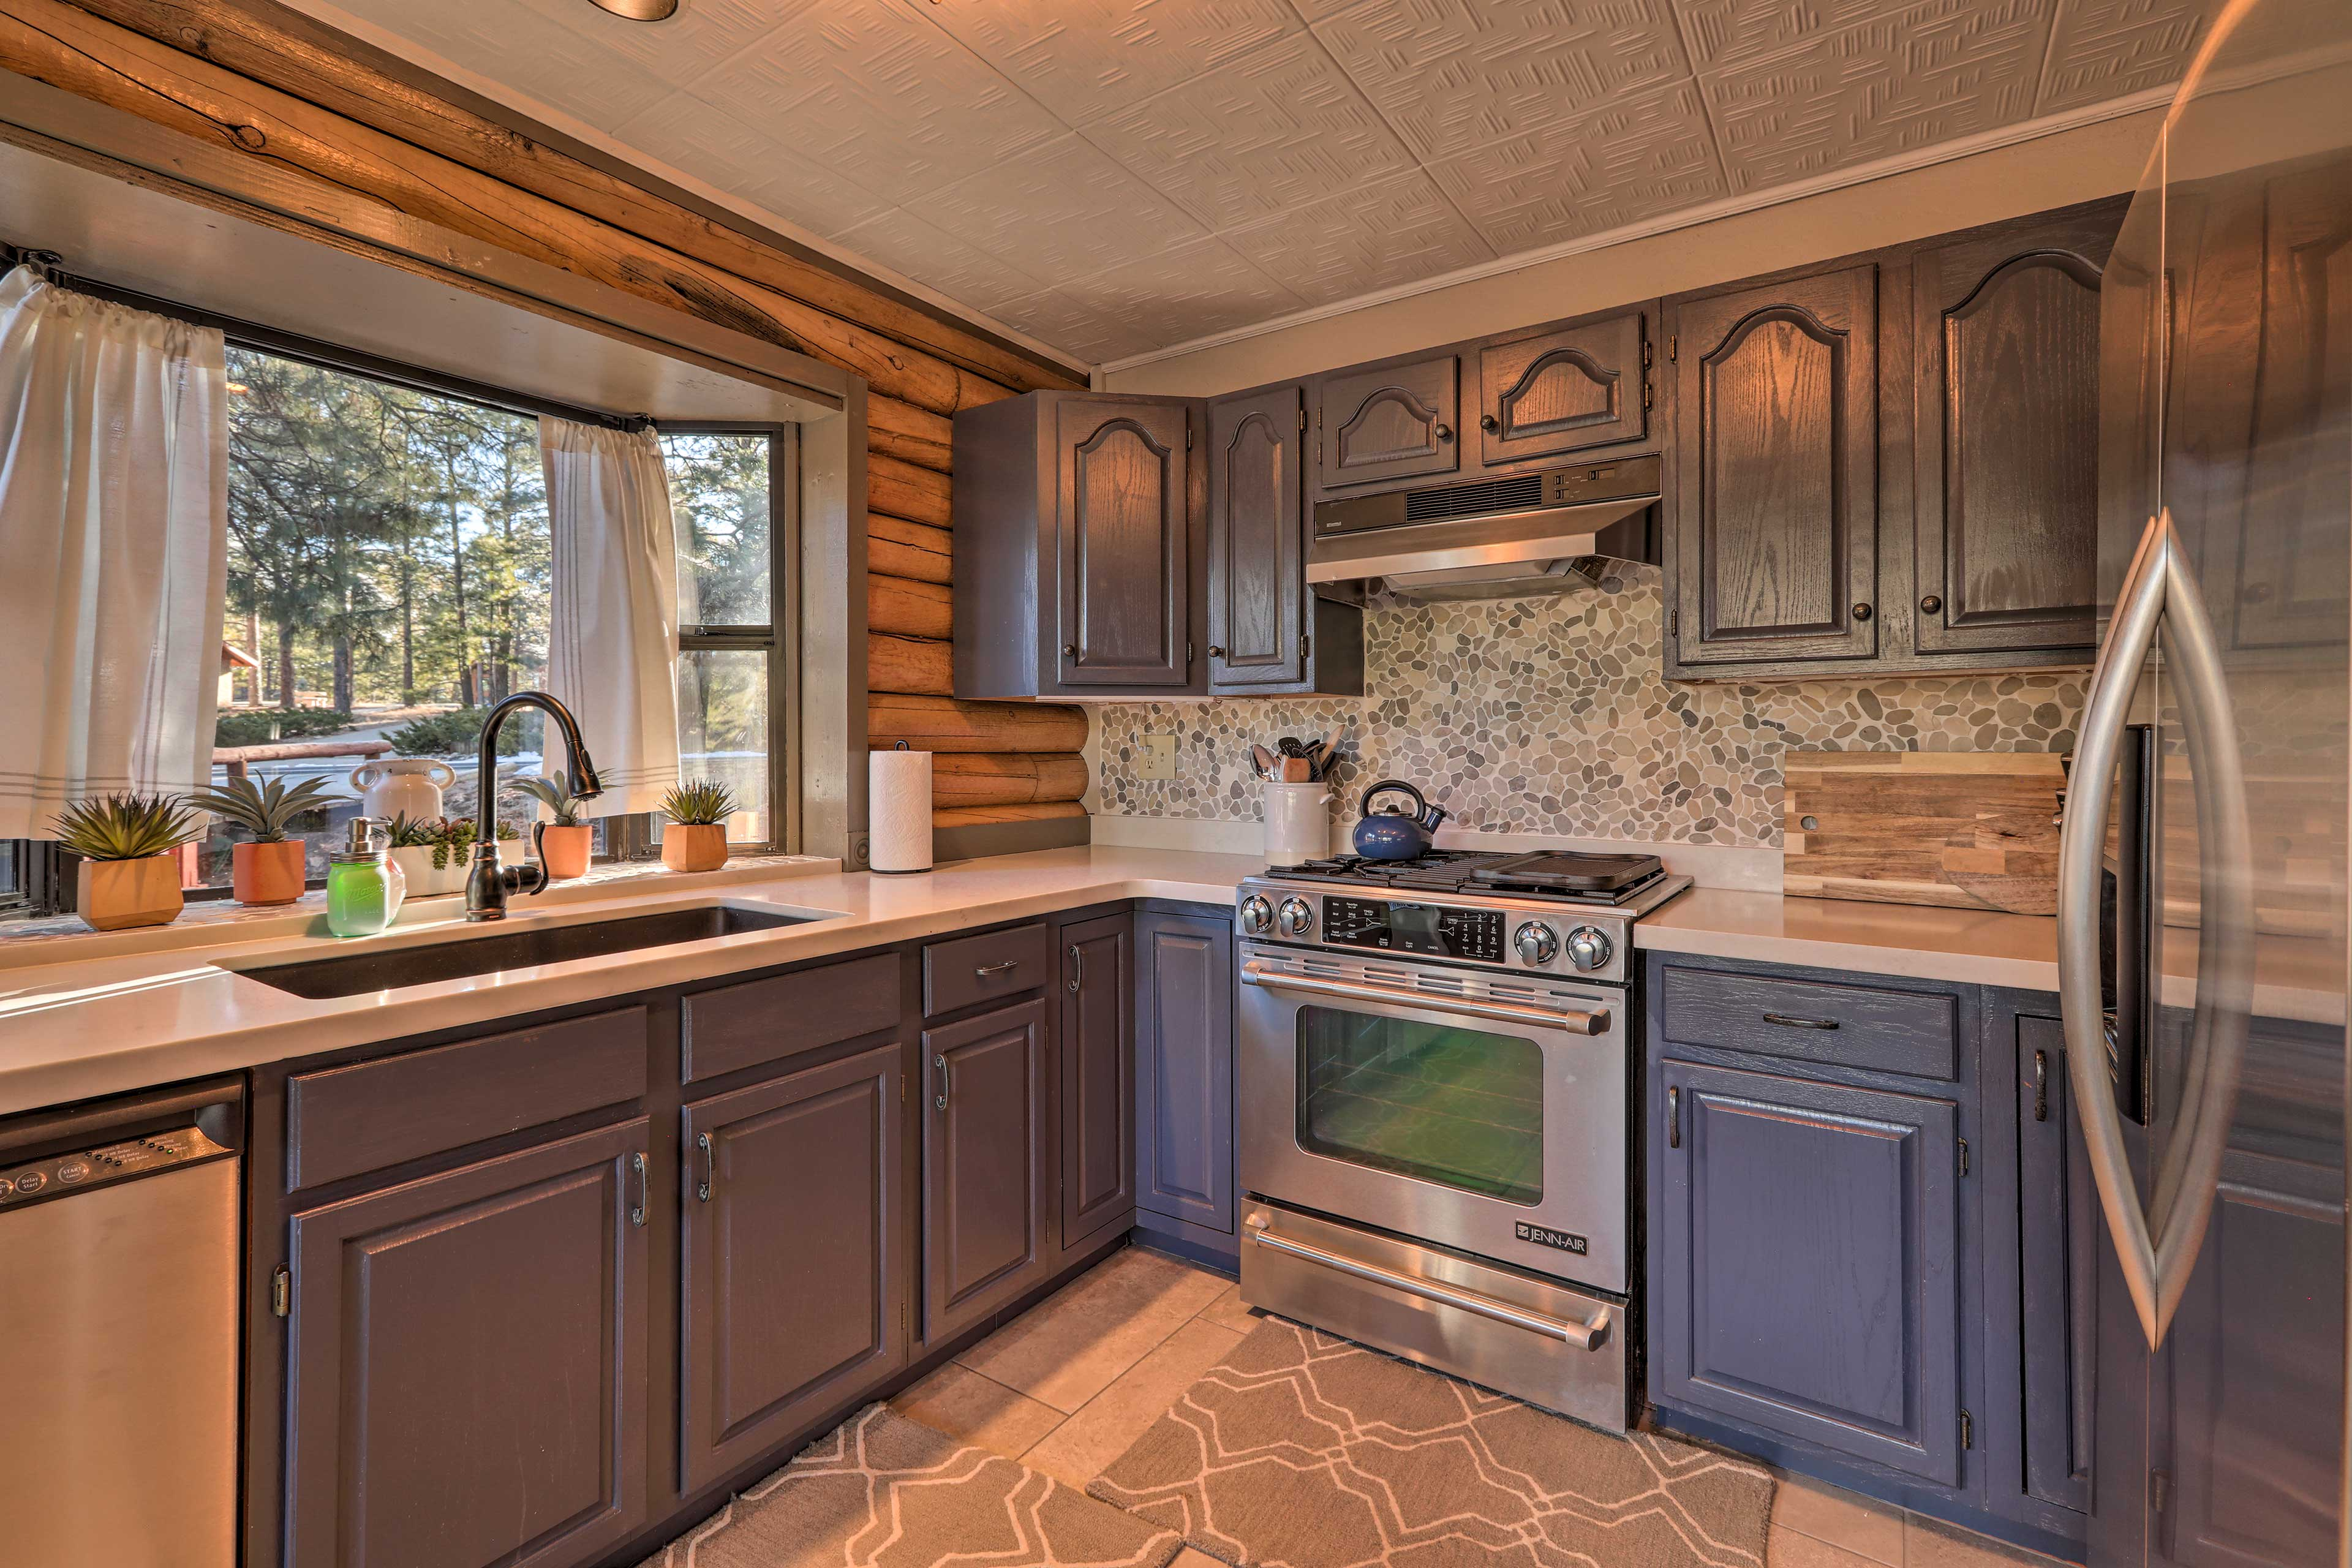 This kitchen blends a beautiful modern and rustic style together.